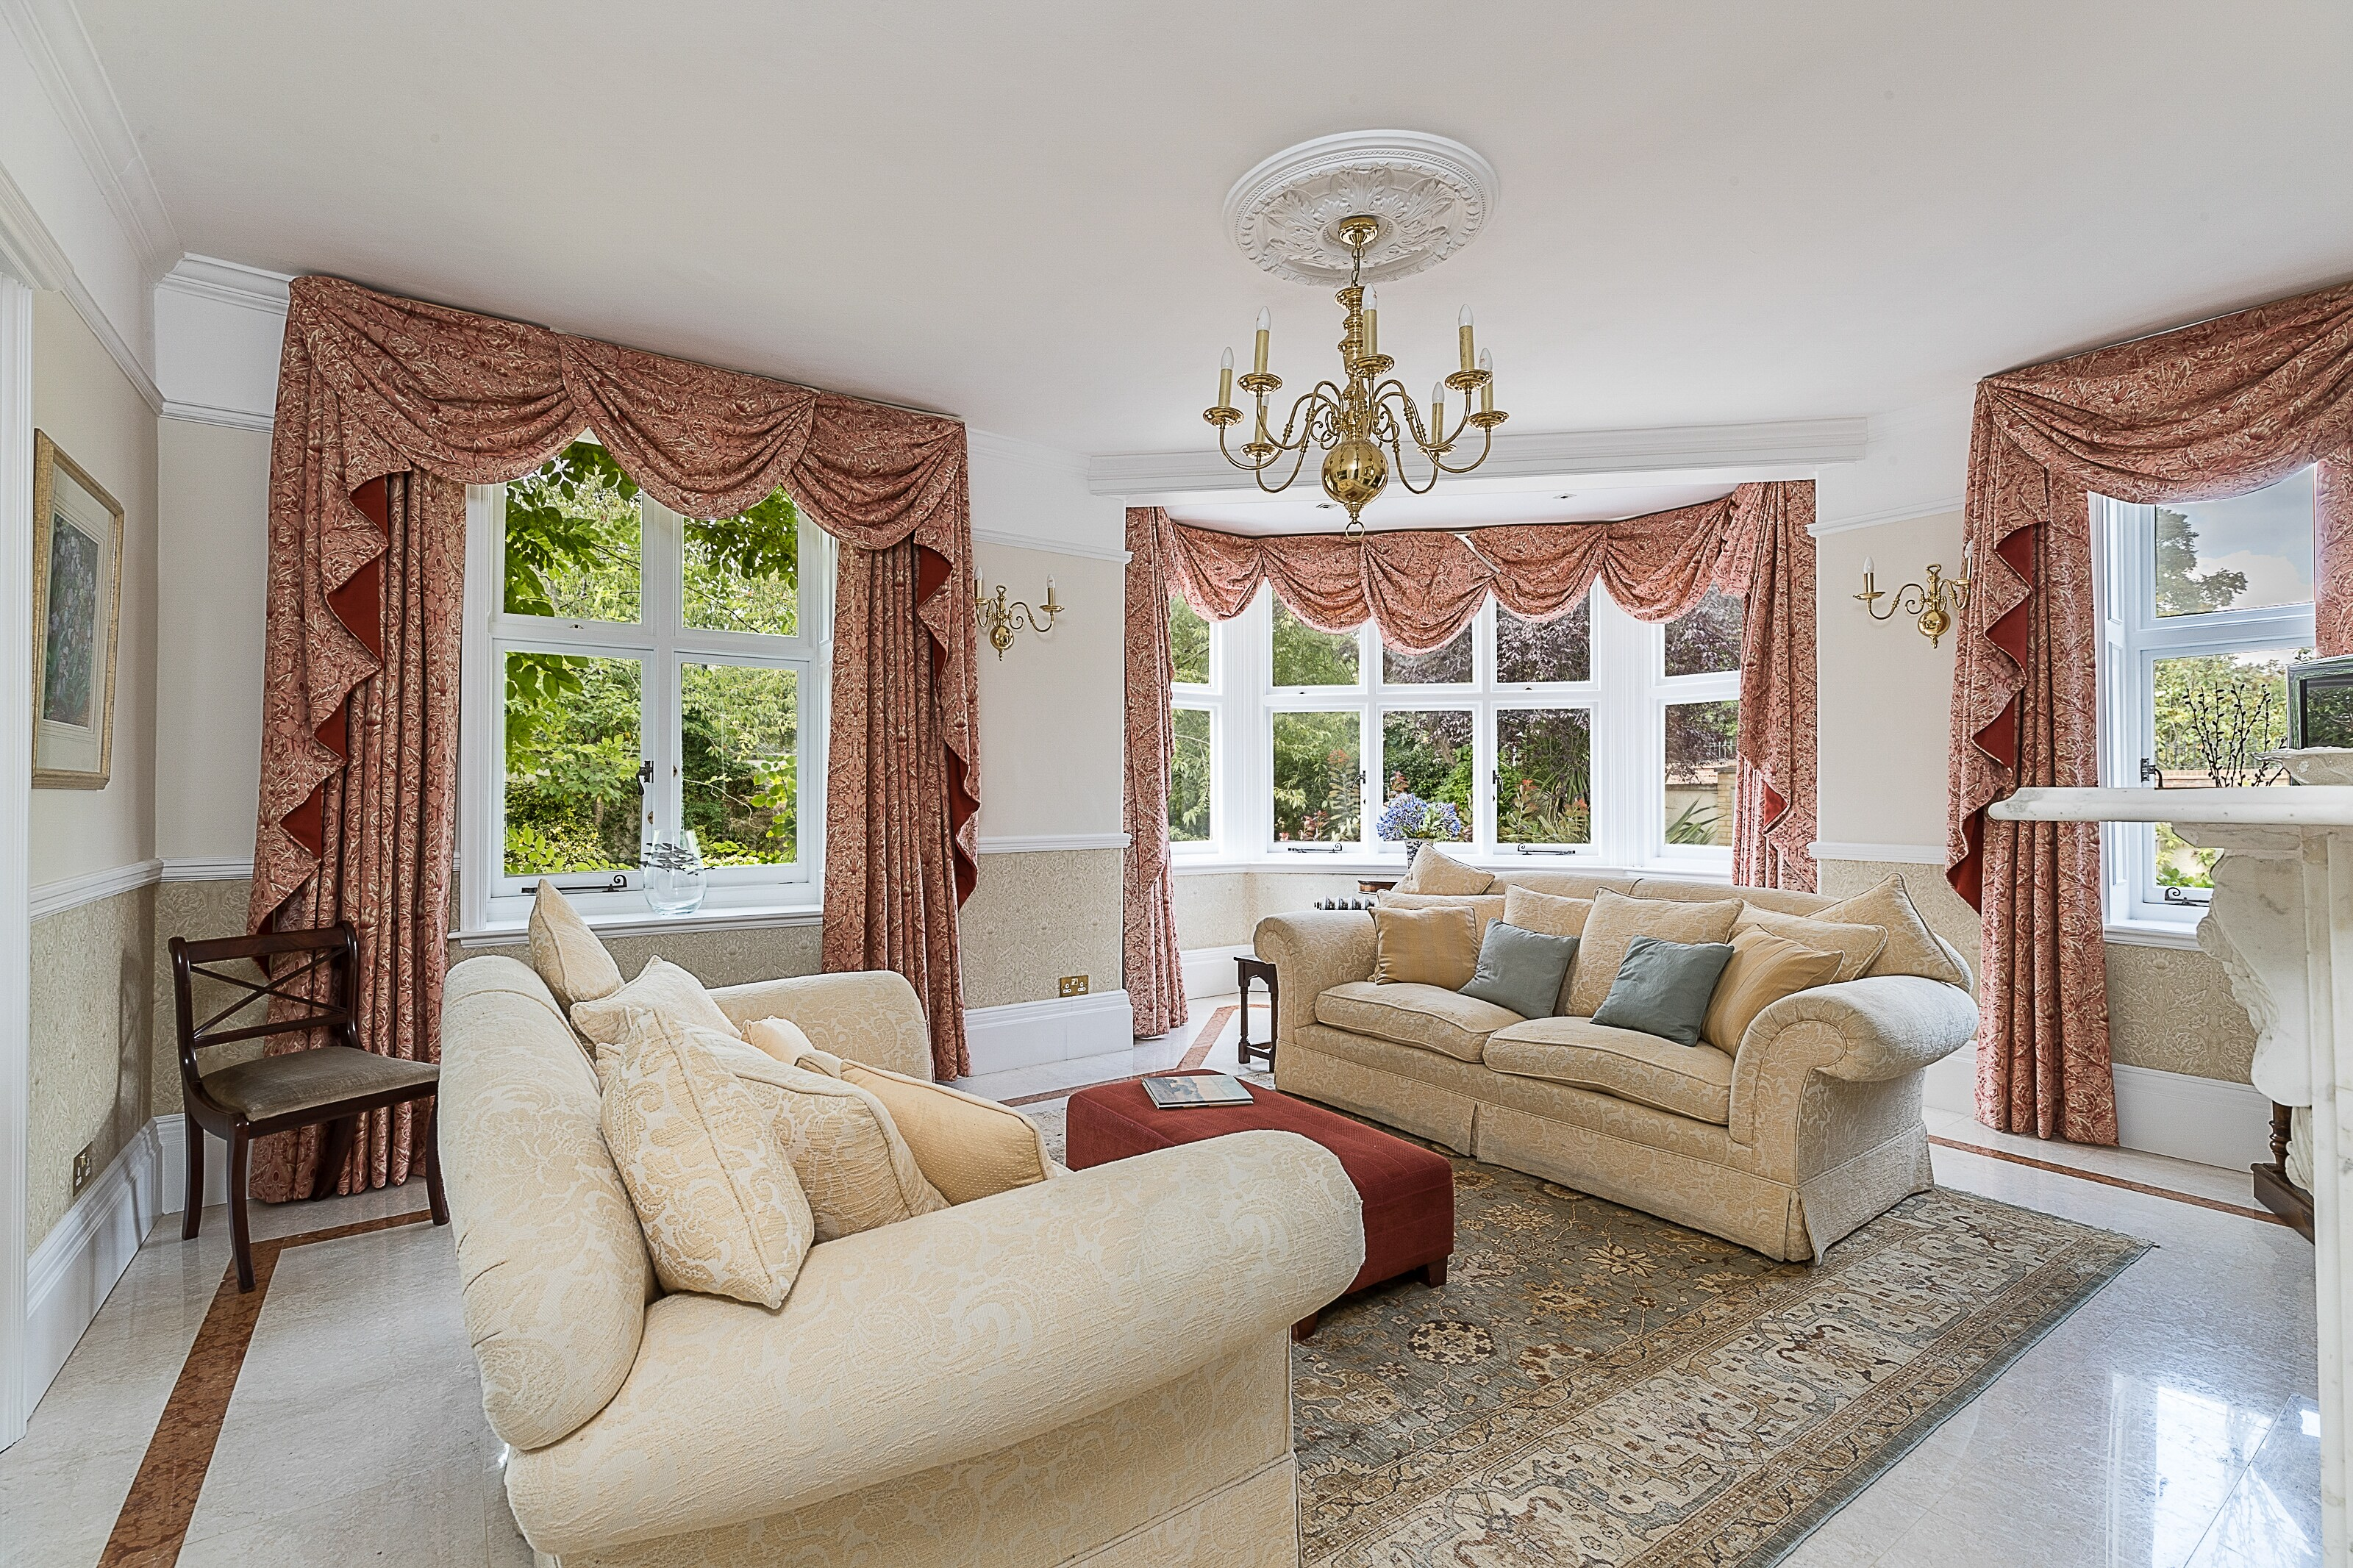 Property Image 2 - Stunning 5 bedroom house in Wimbledon with a garden